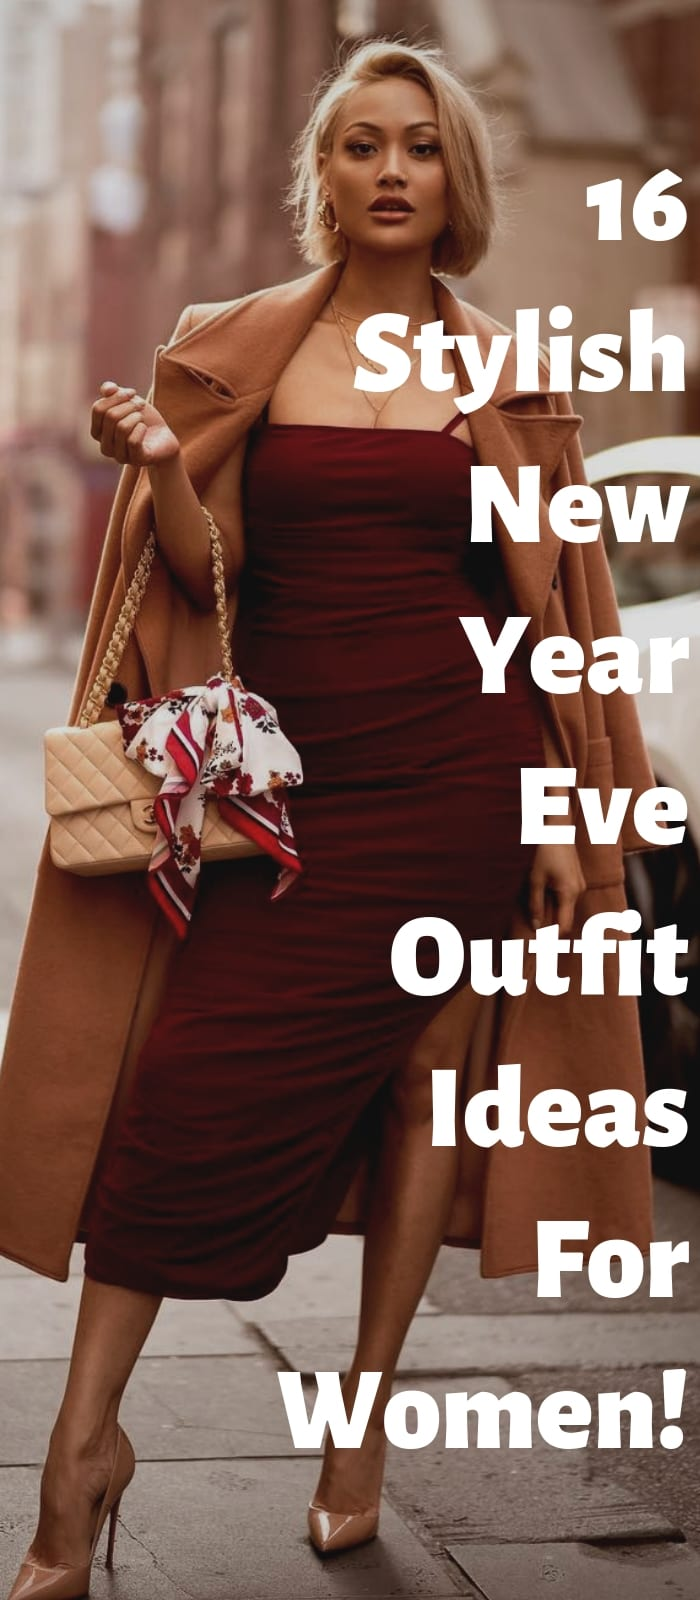 16 New Year Eve Outfit Ideas For Women